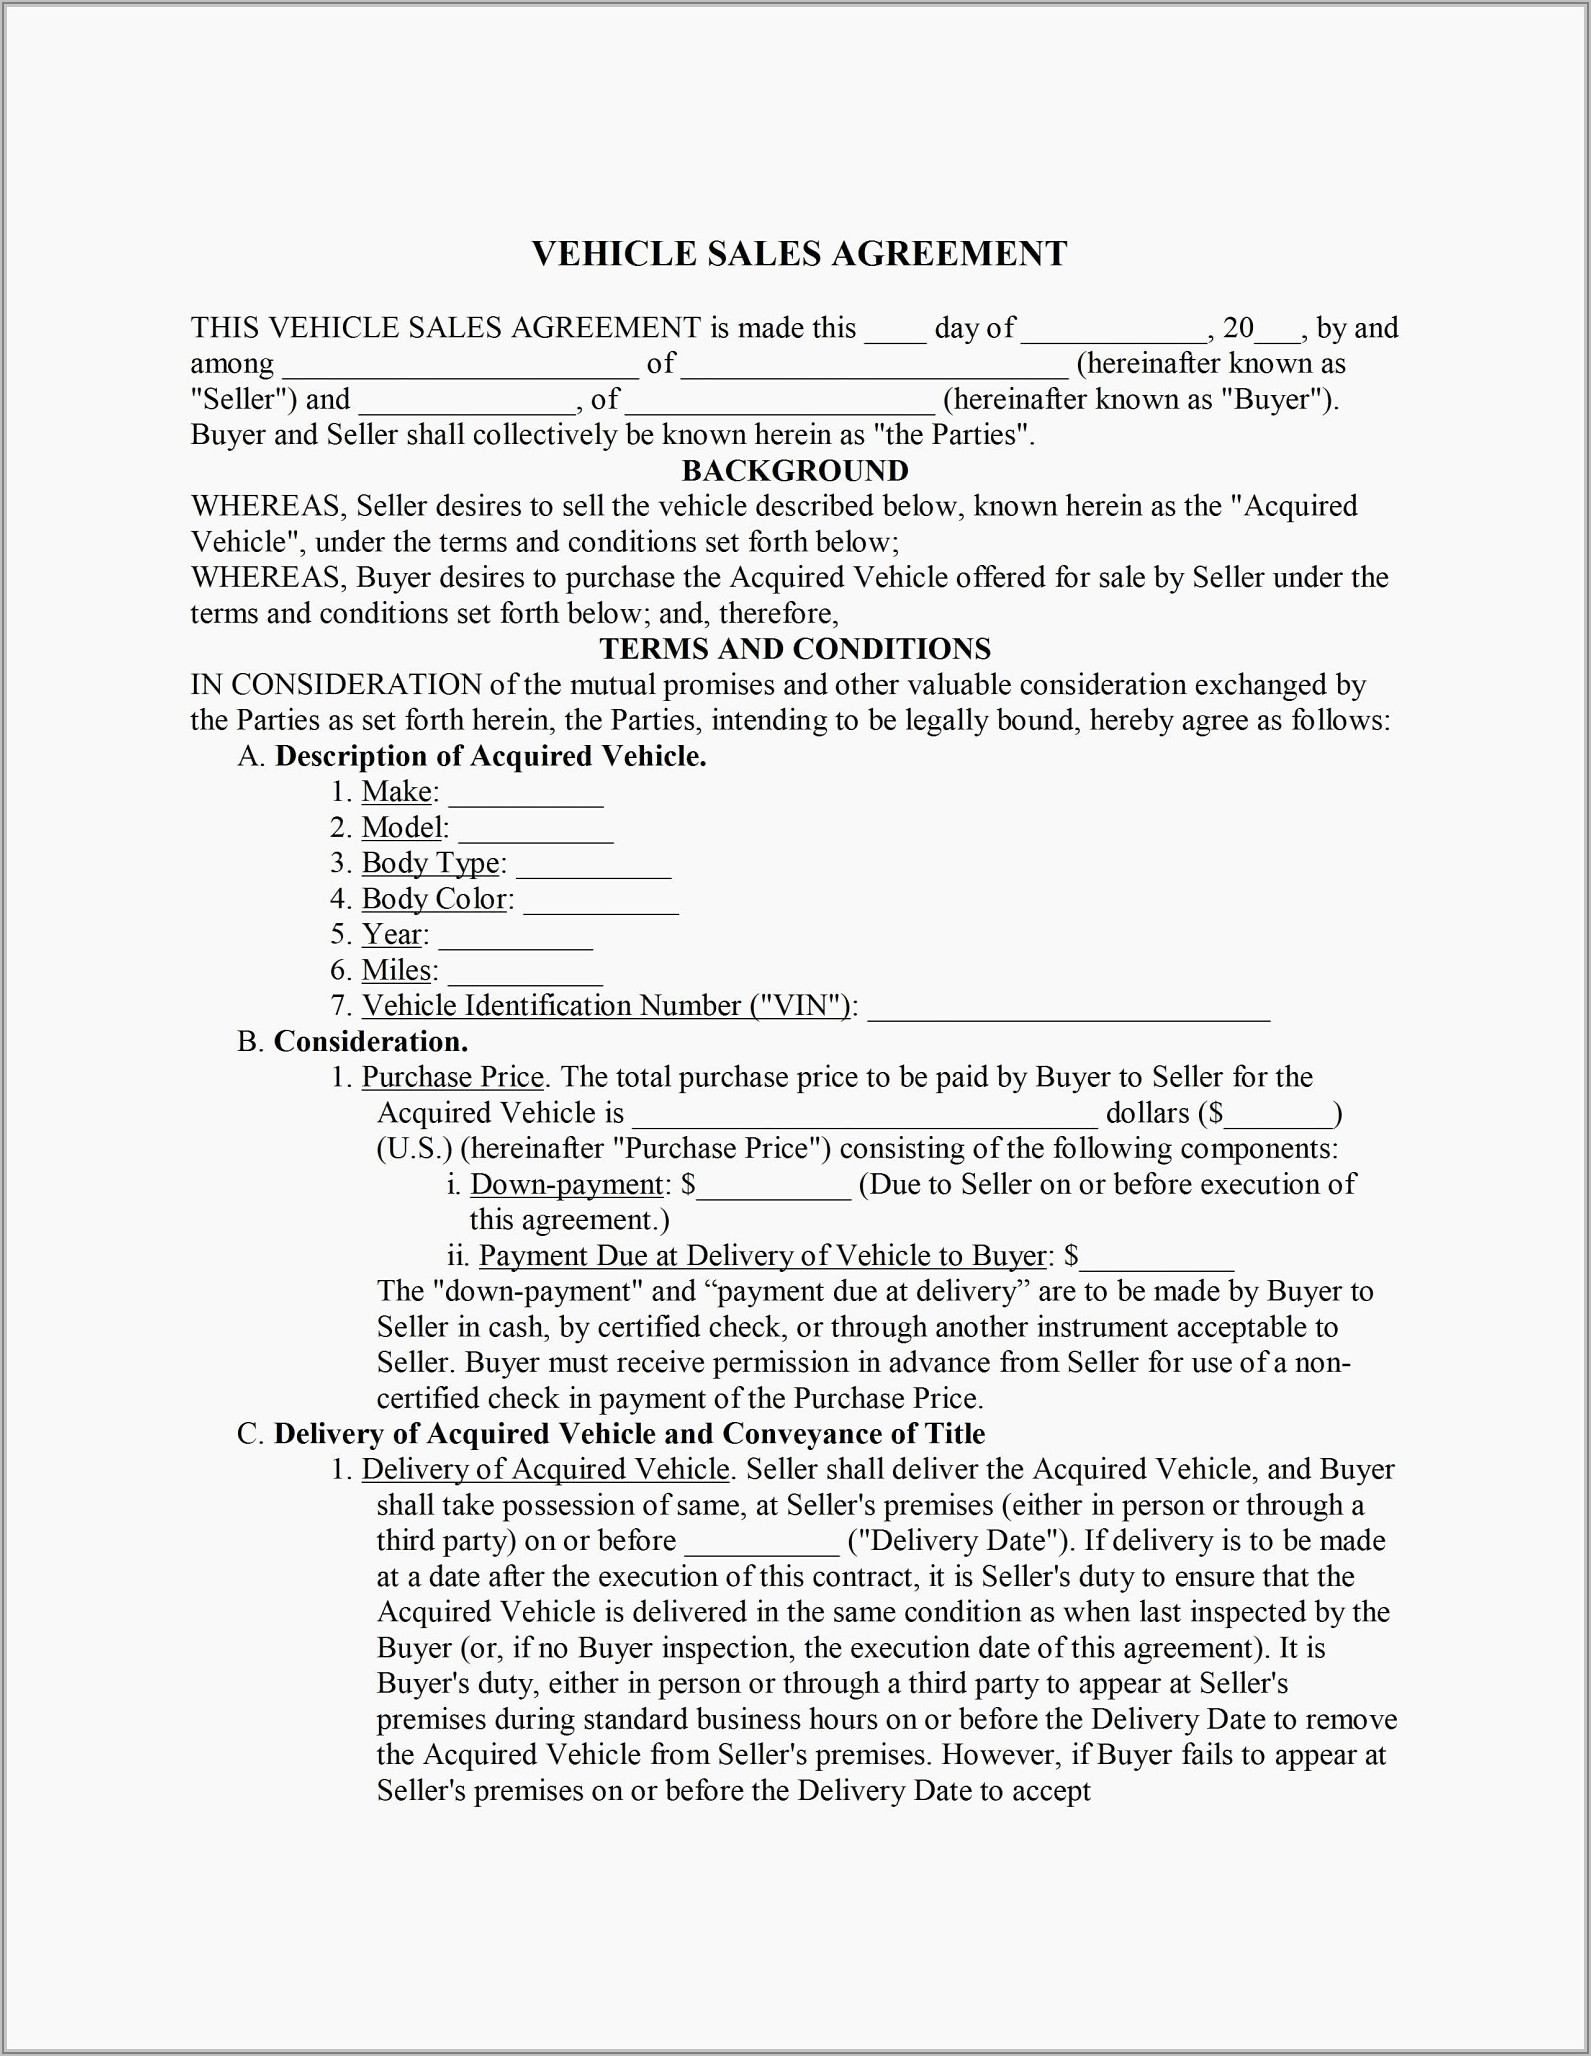 Vehicle Sale Agreement Format In Word India